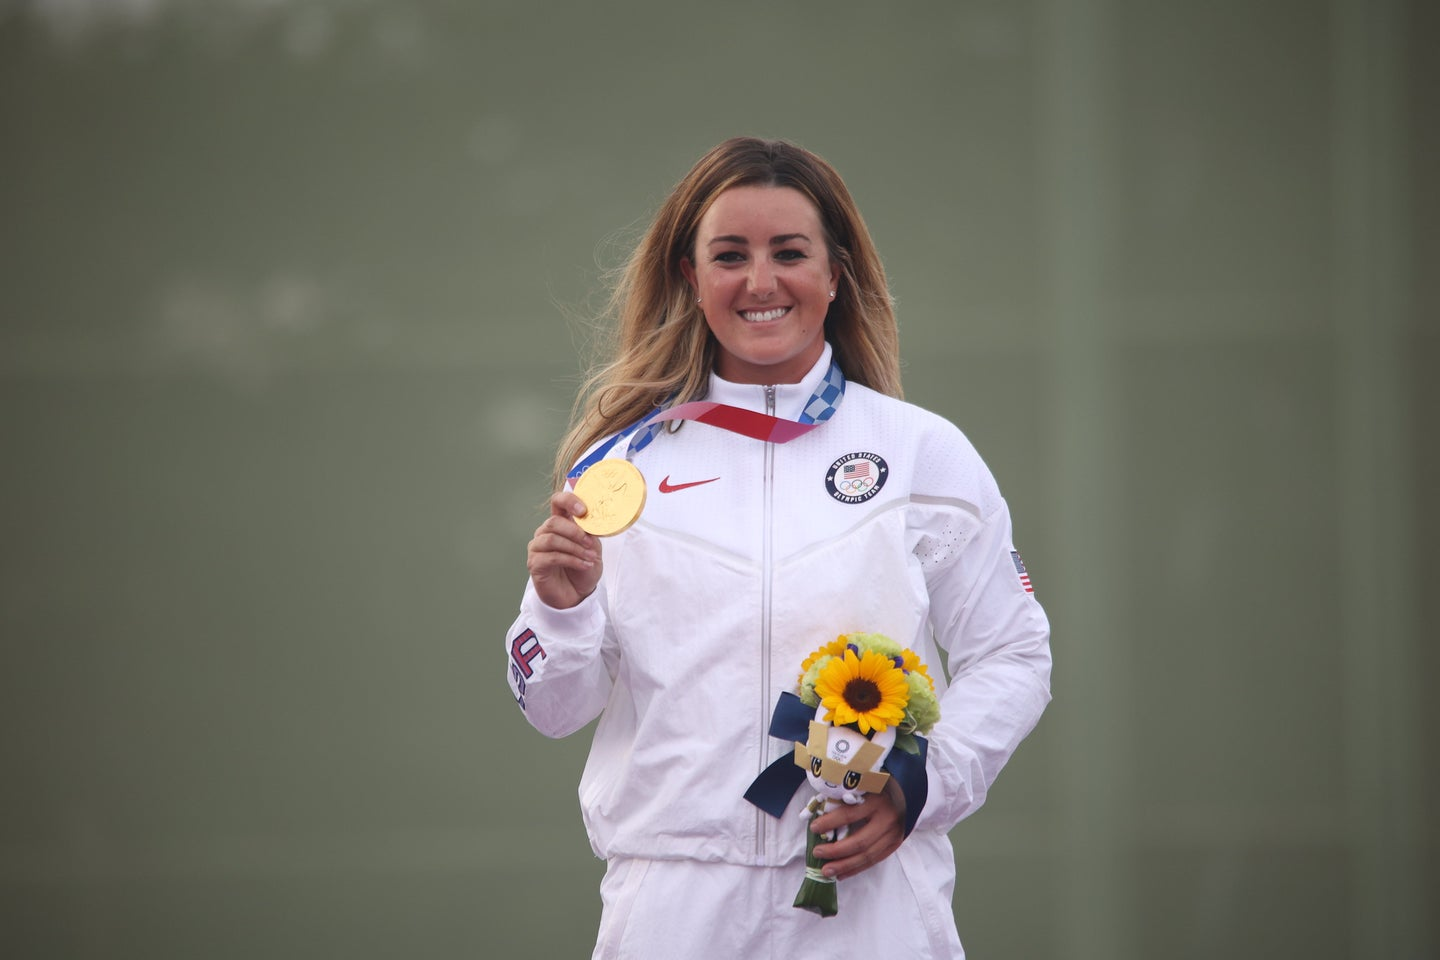 Lt. Amber English standing with an olympic gold medal for skeet shooting.